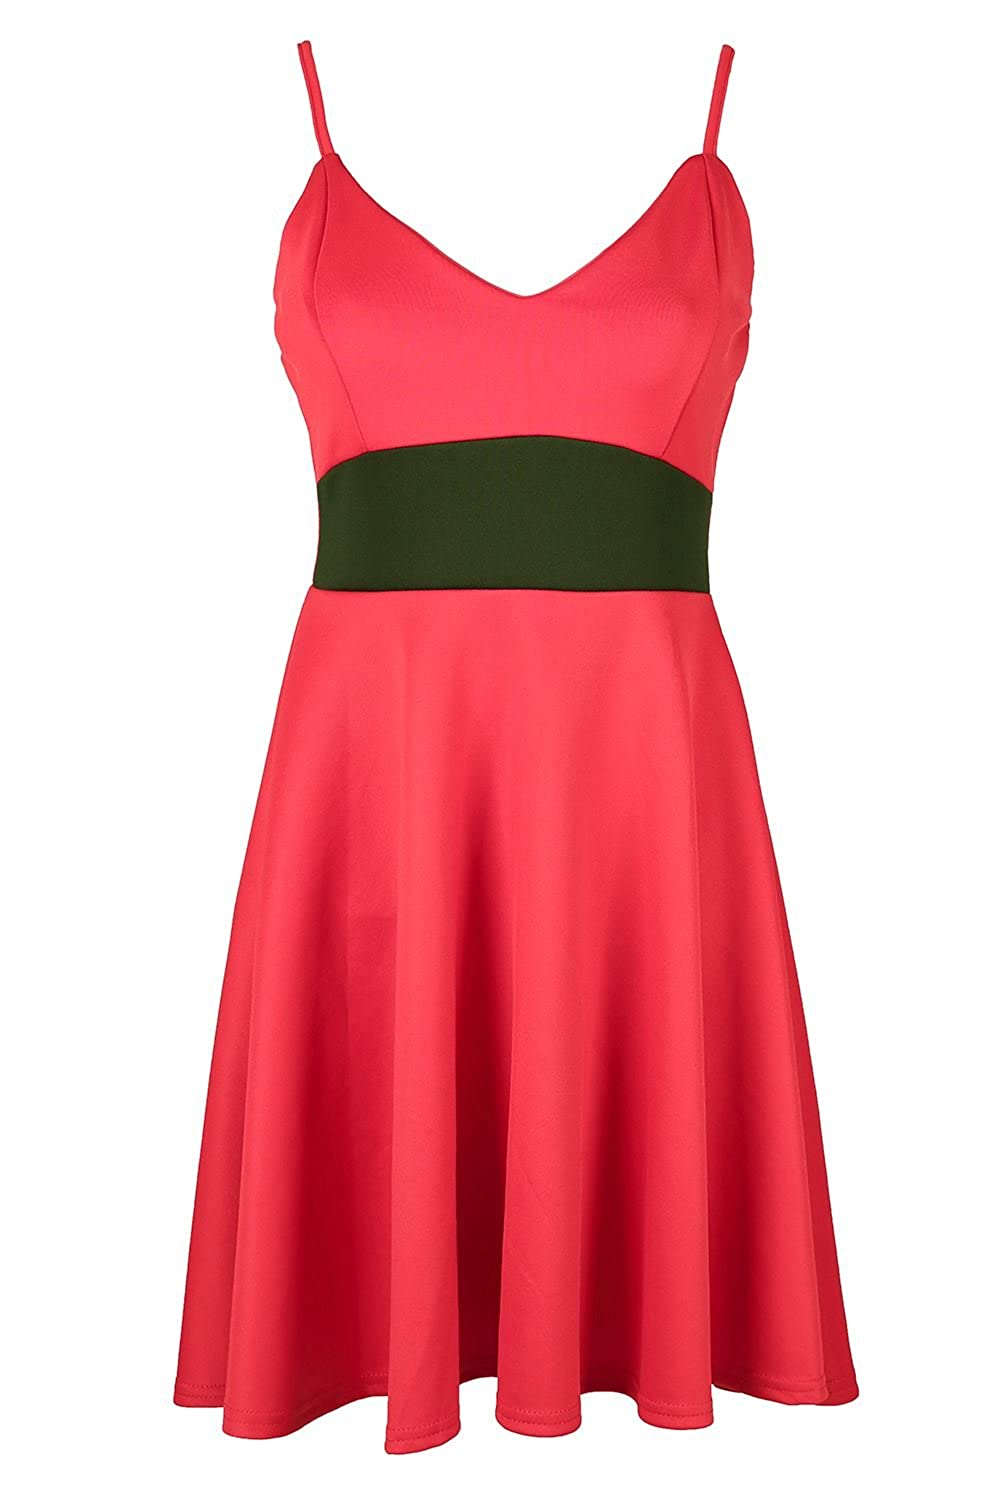 684410d478df8 Oops Outlet Womens Ladies Contrast Waist Panel Bandeau Bralet Strappy Swing  Flared Franki Sleeveless Mini Skater Dress Plus Size UK 8-26  Amazon.co.uk   ...